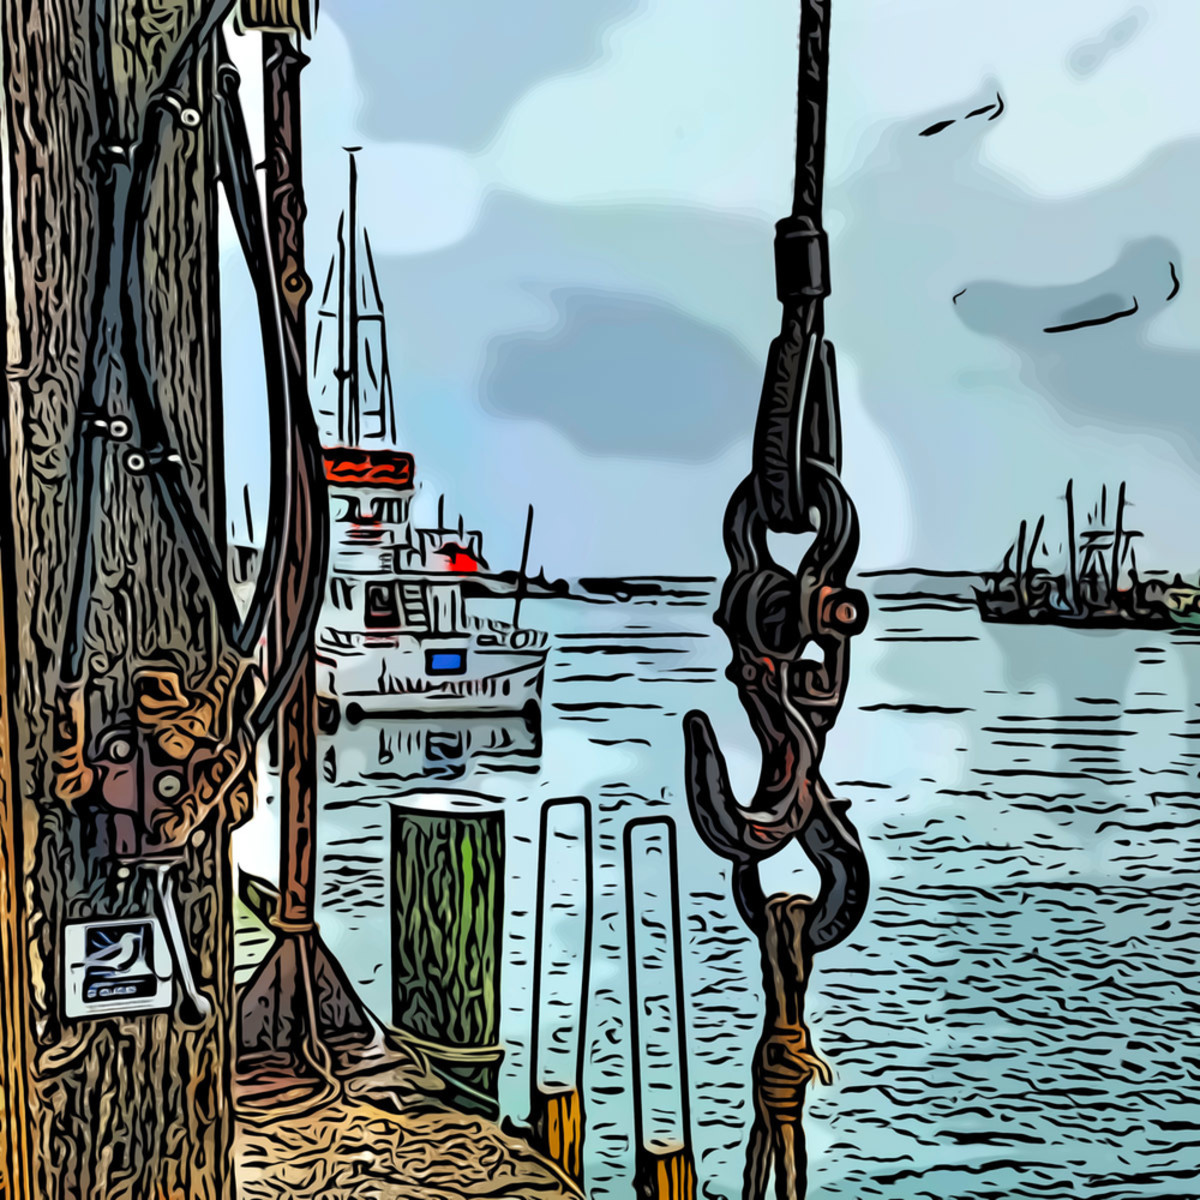 Waiting for boats 18x18 1 hqtsxp